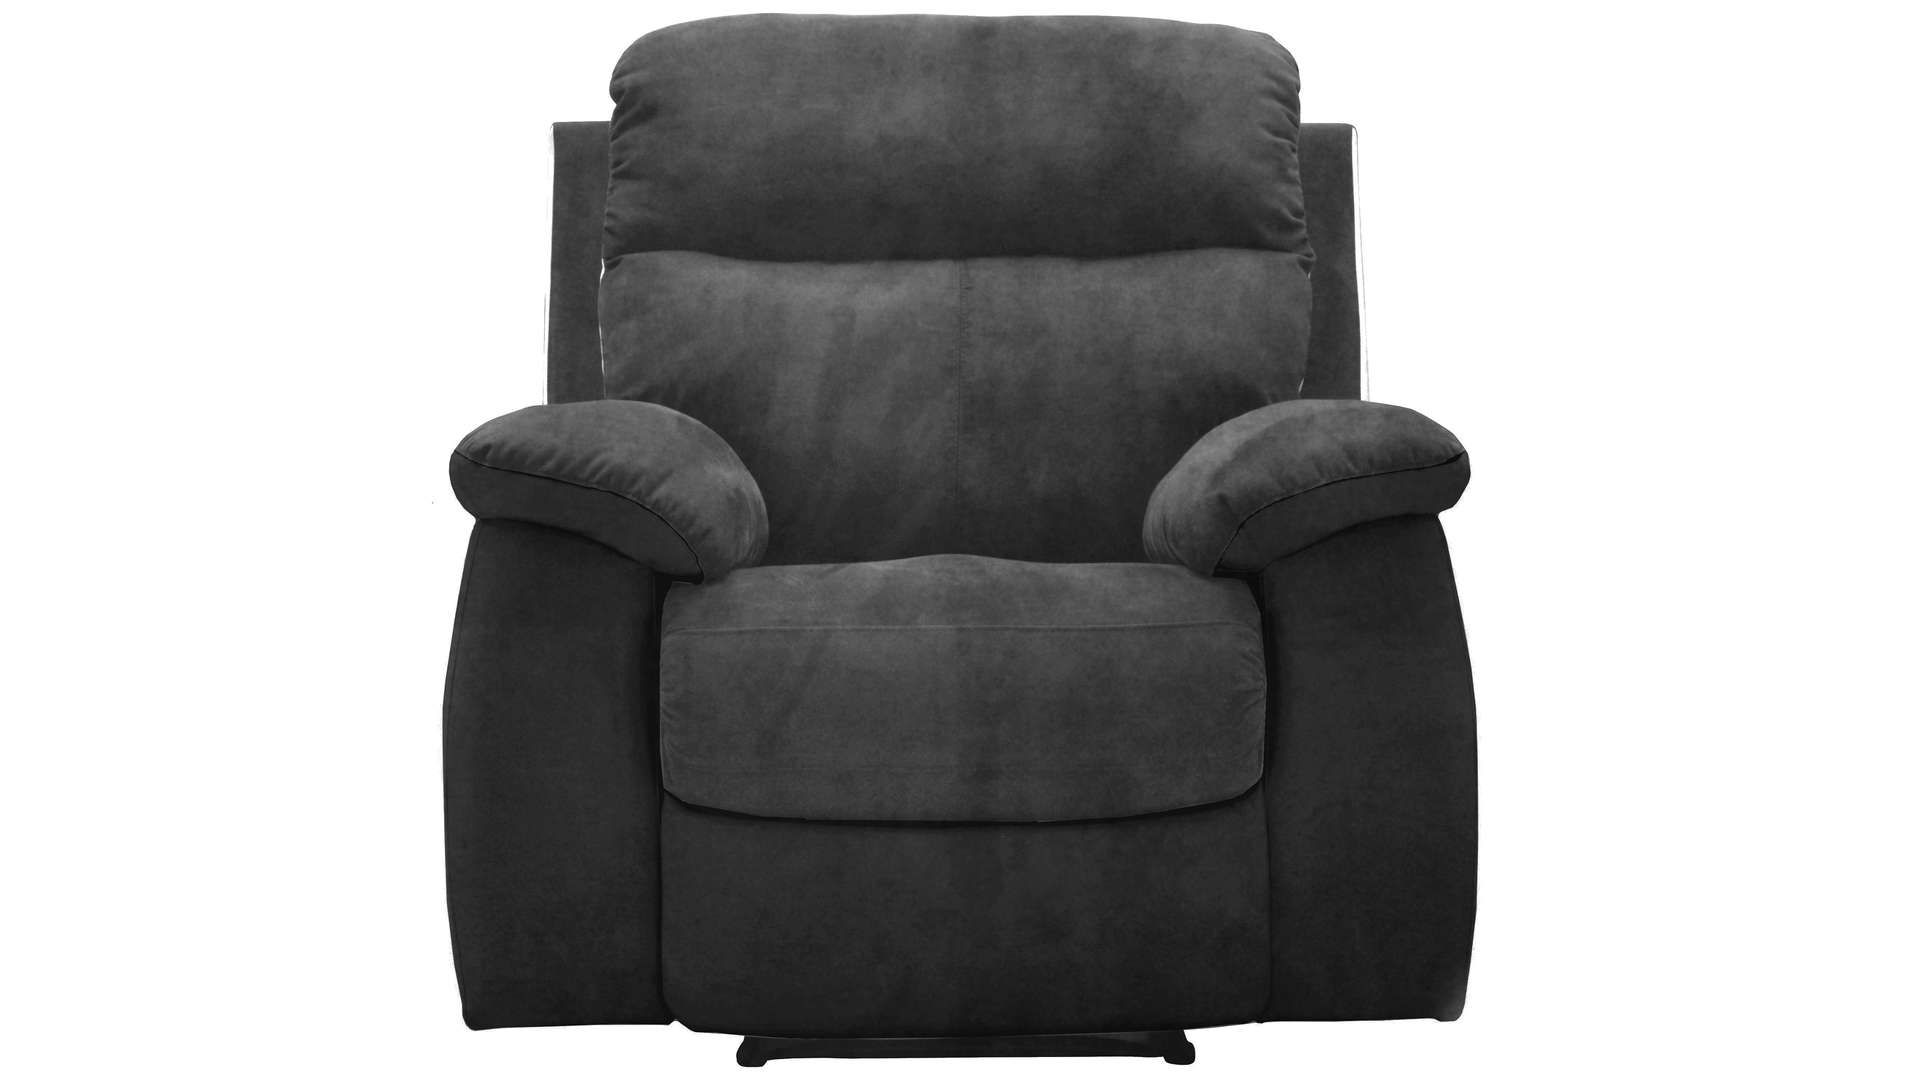 Fauteuil Relaxation Memphis Fauteuil Relax Conforama